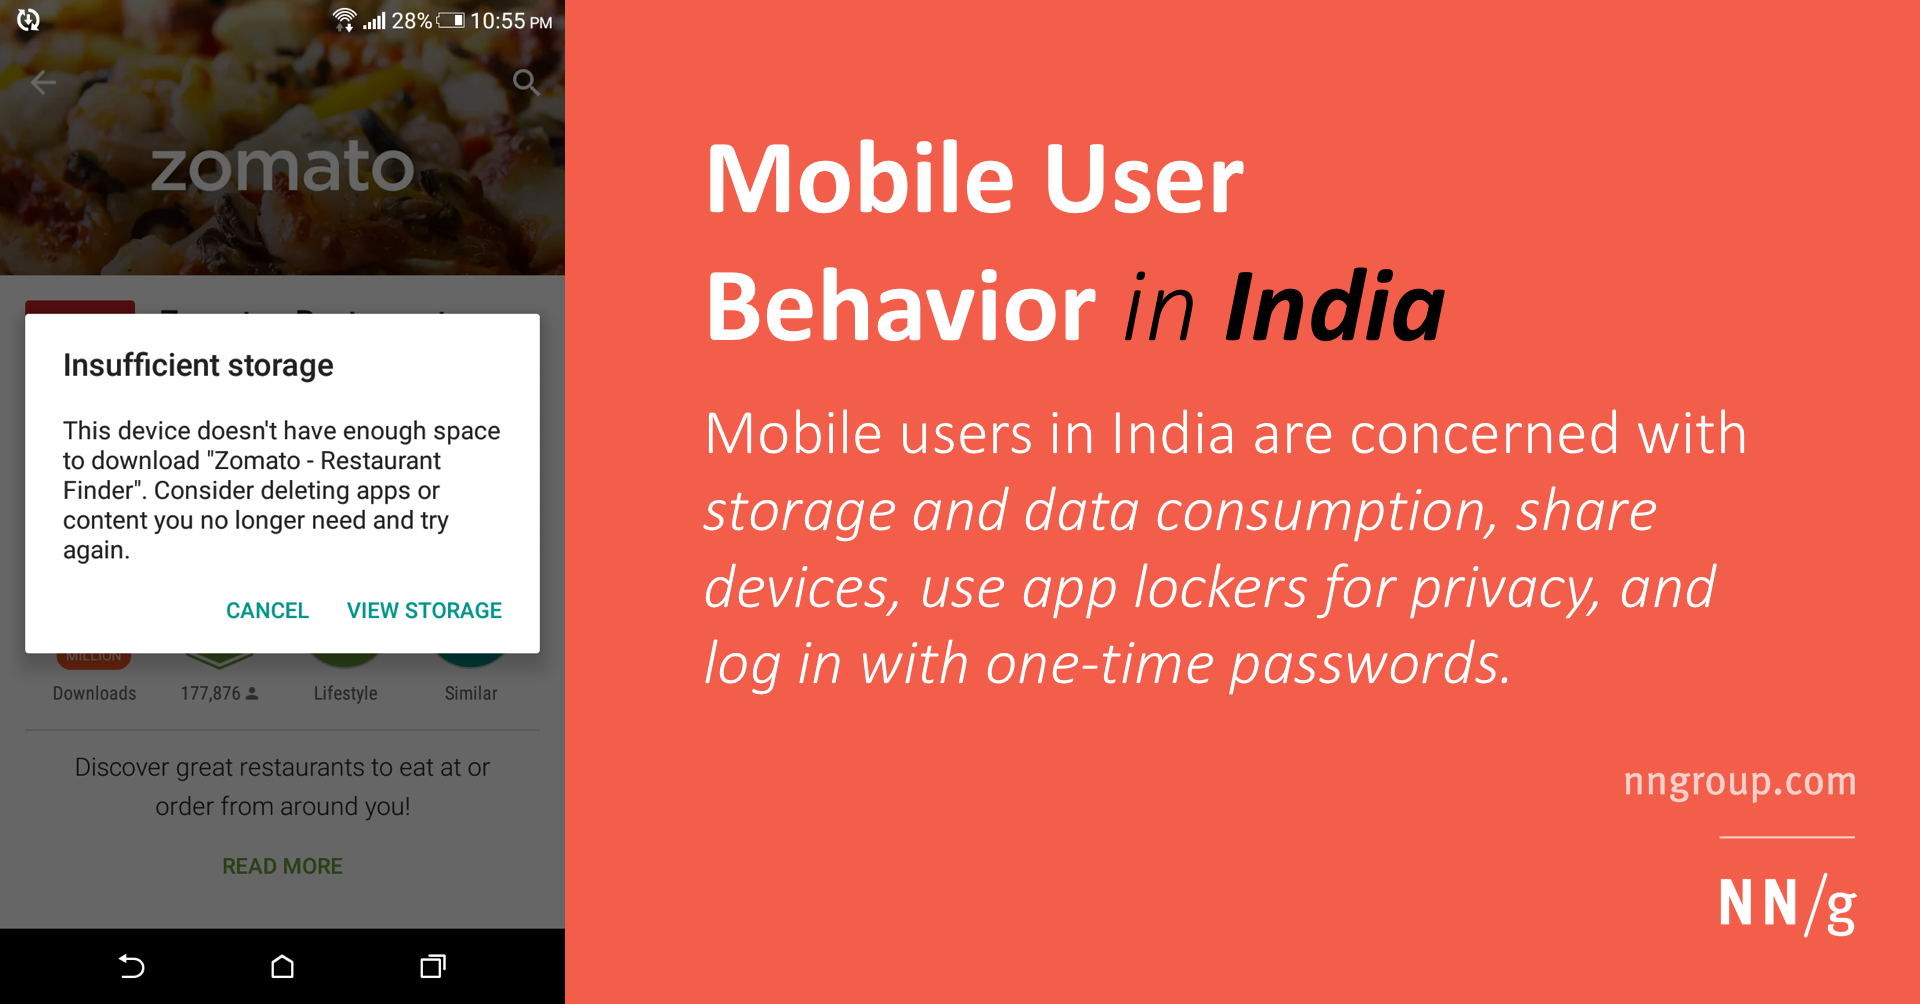 Mobile User Behavior in India